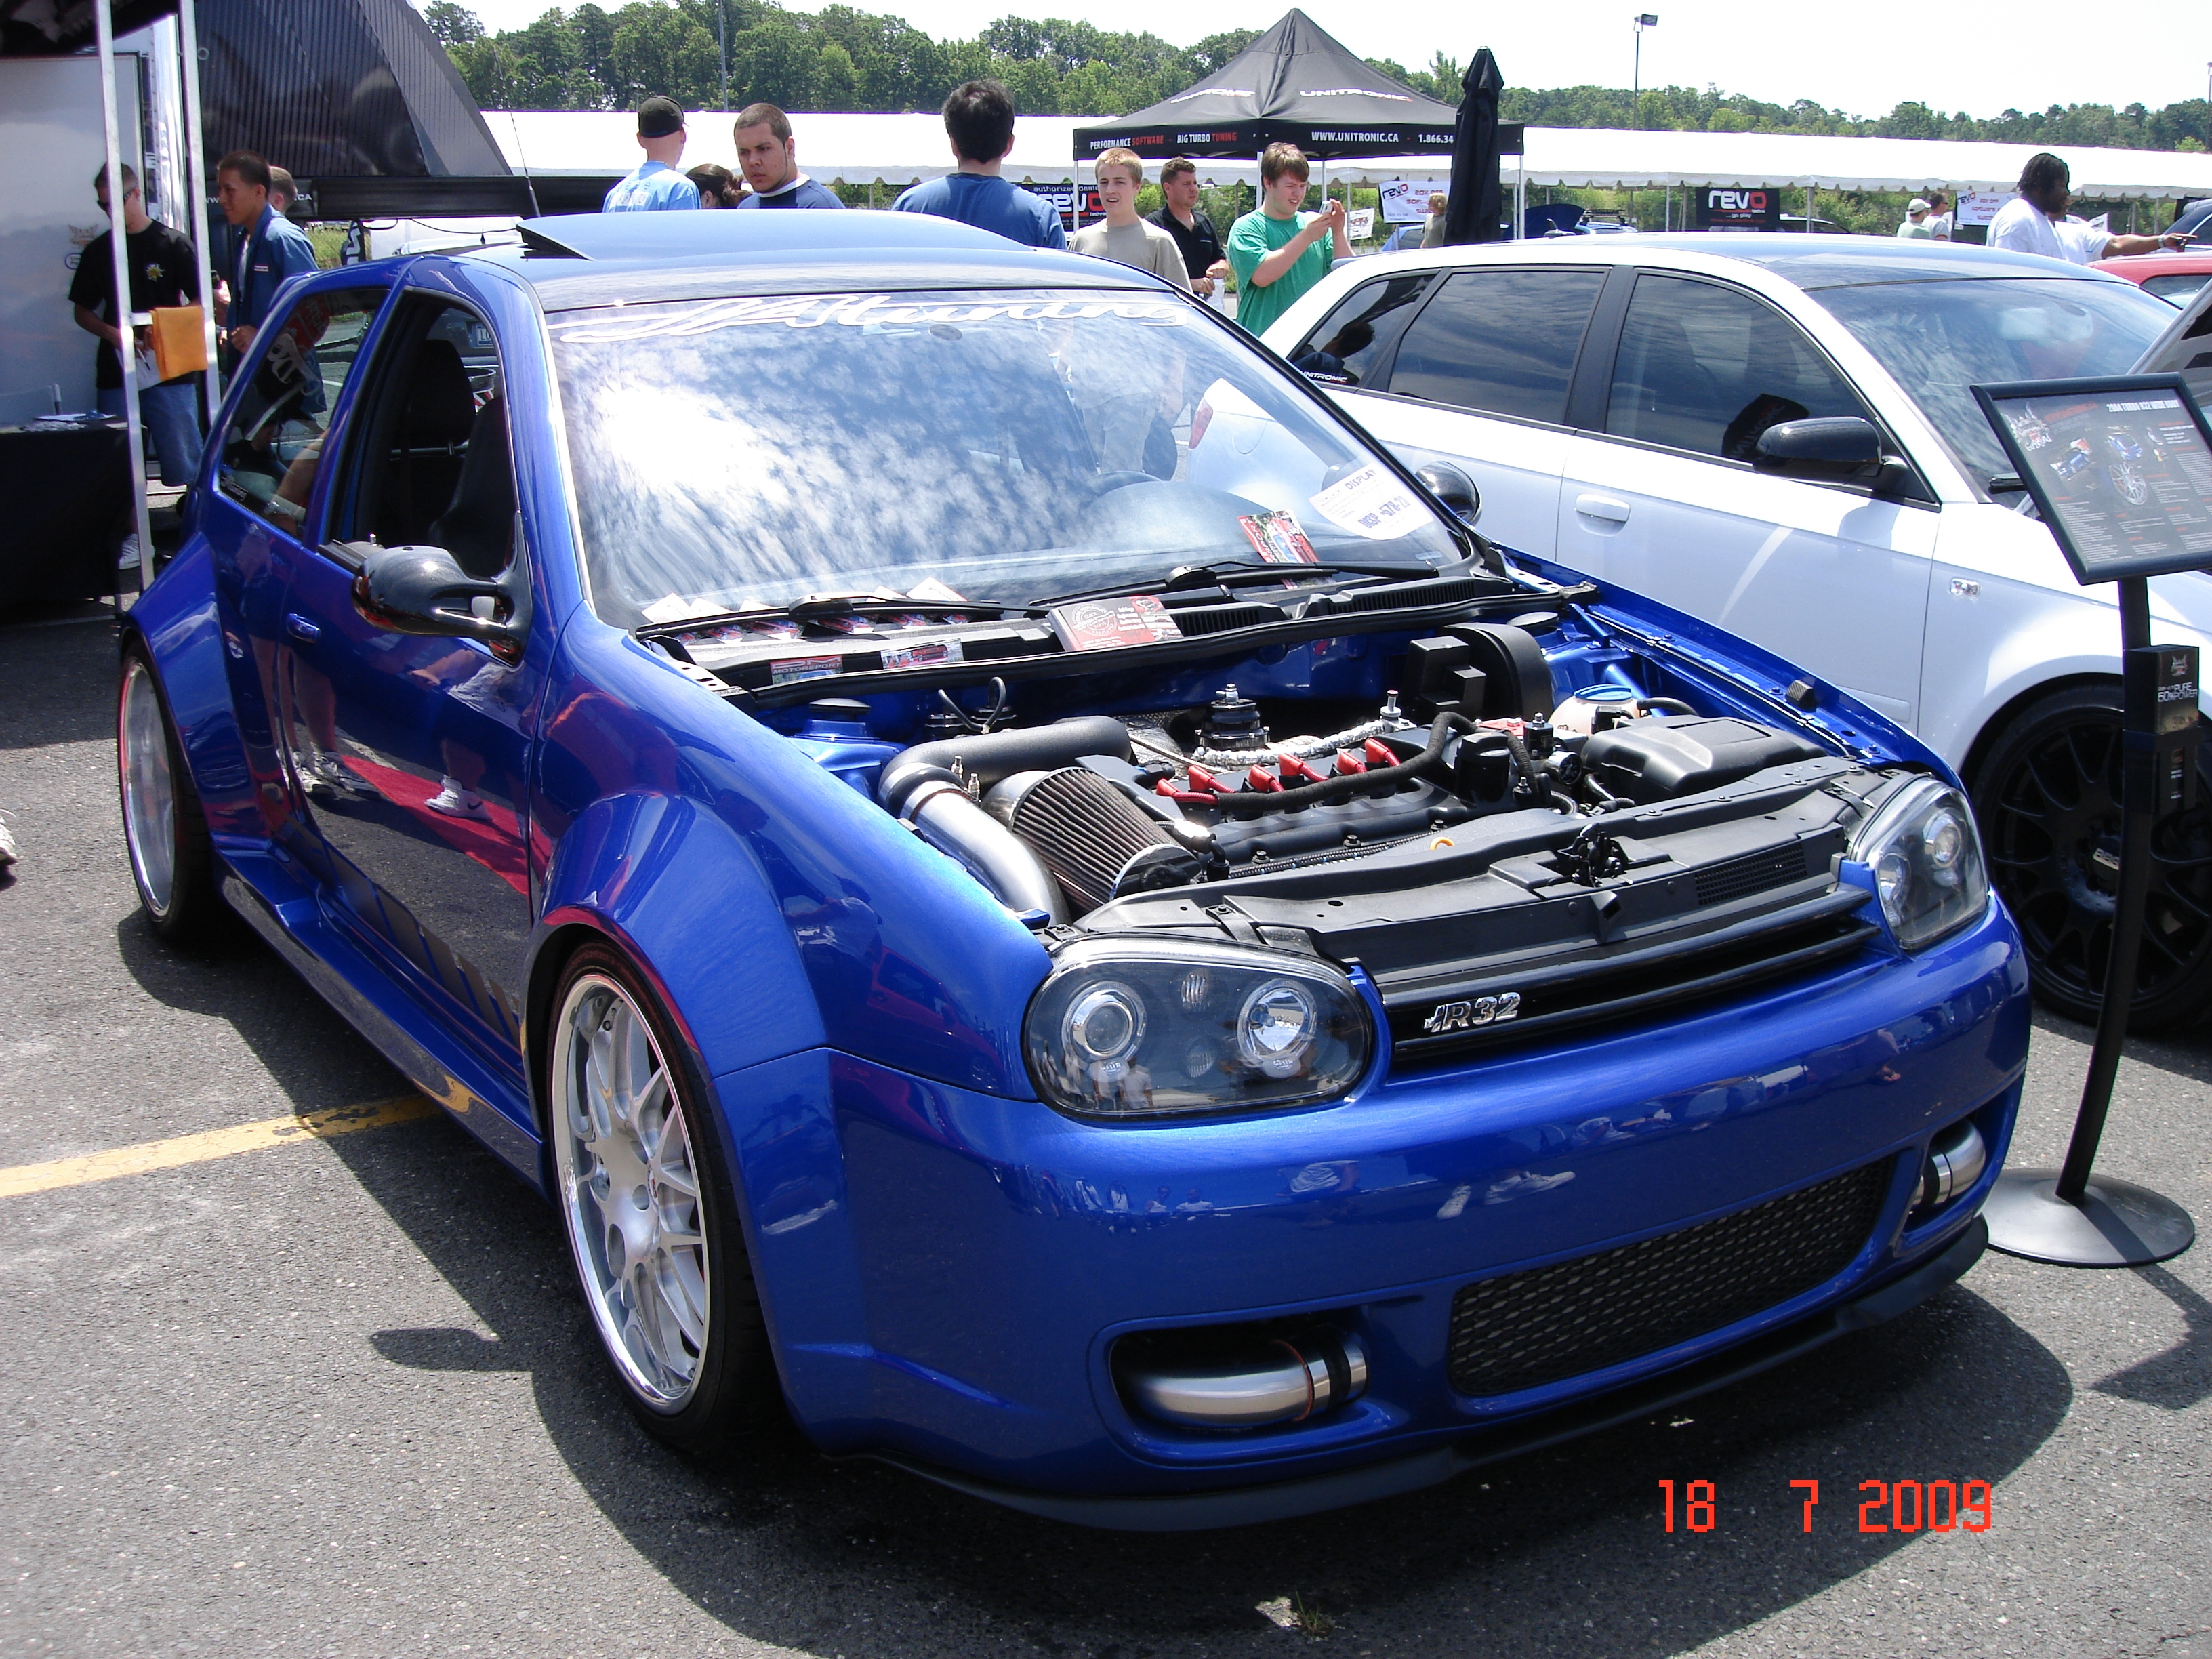 JATuning 2004 Volkswagen R32 Specs Photos Modification Info at